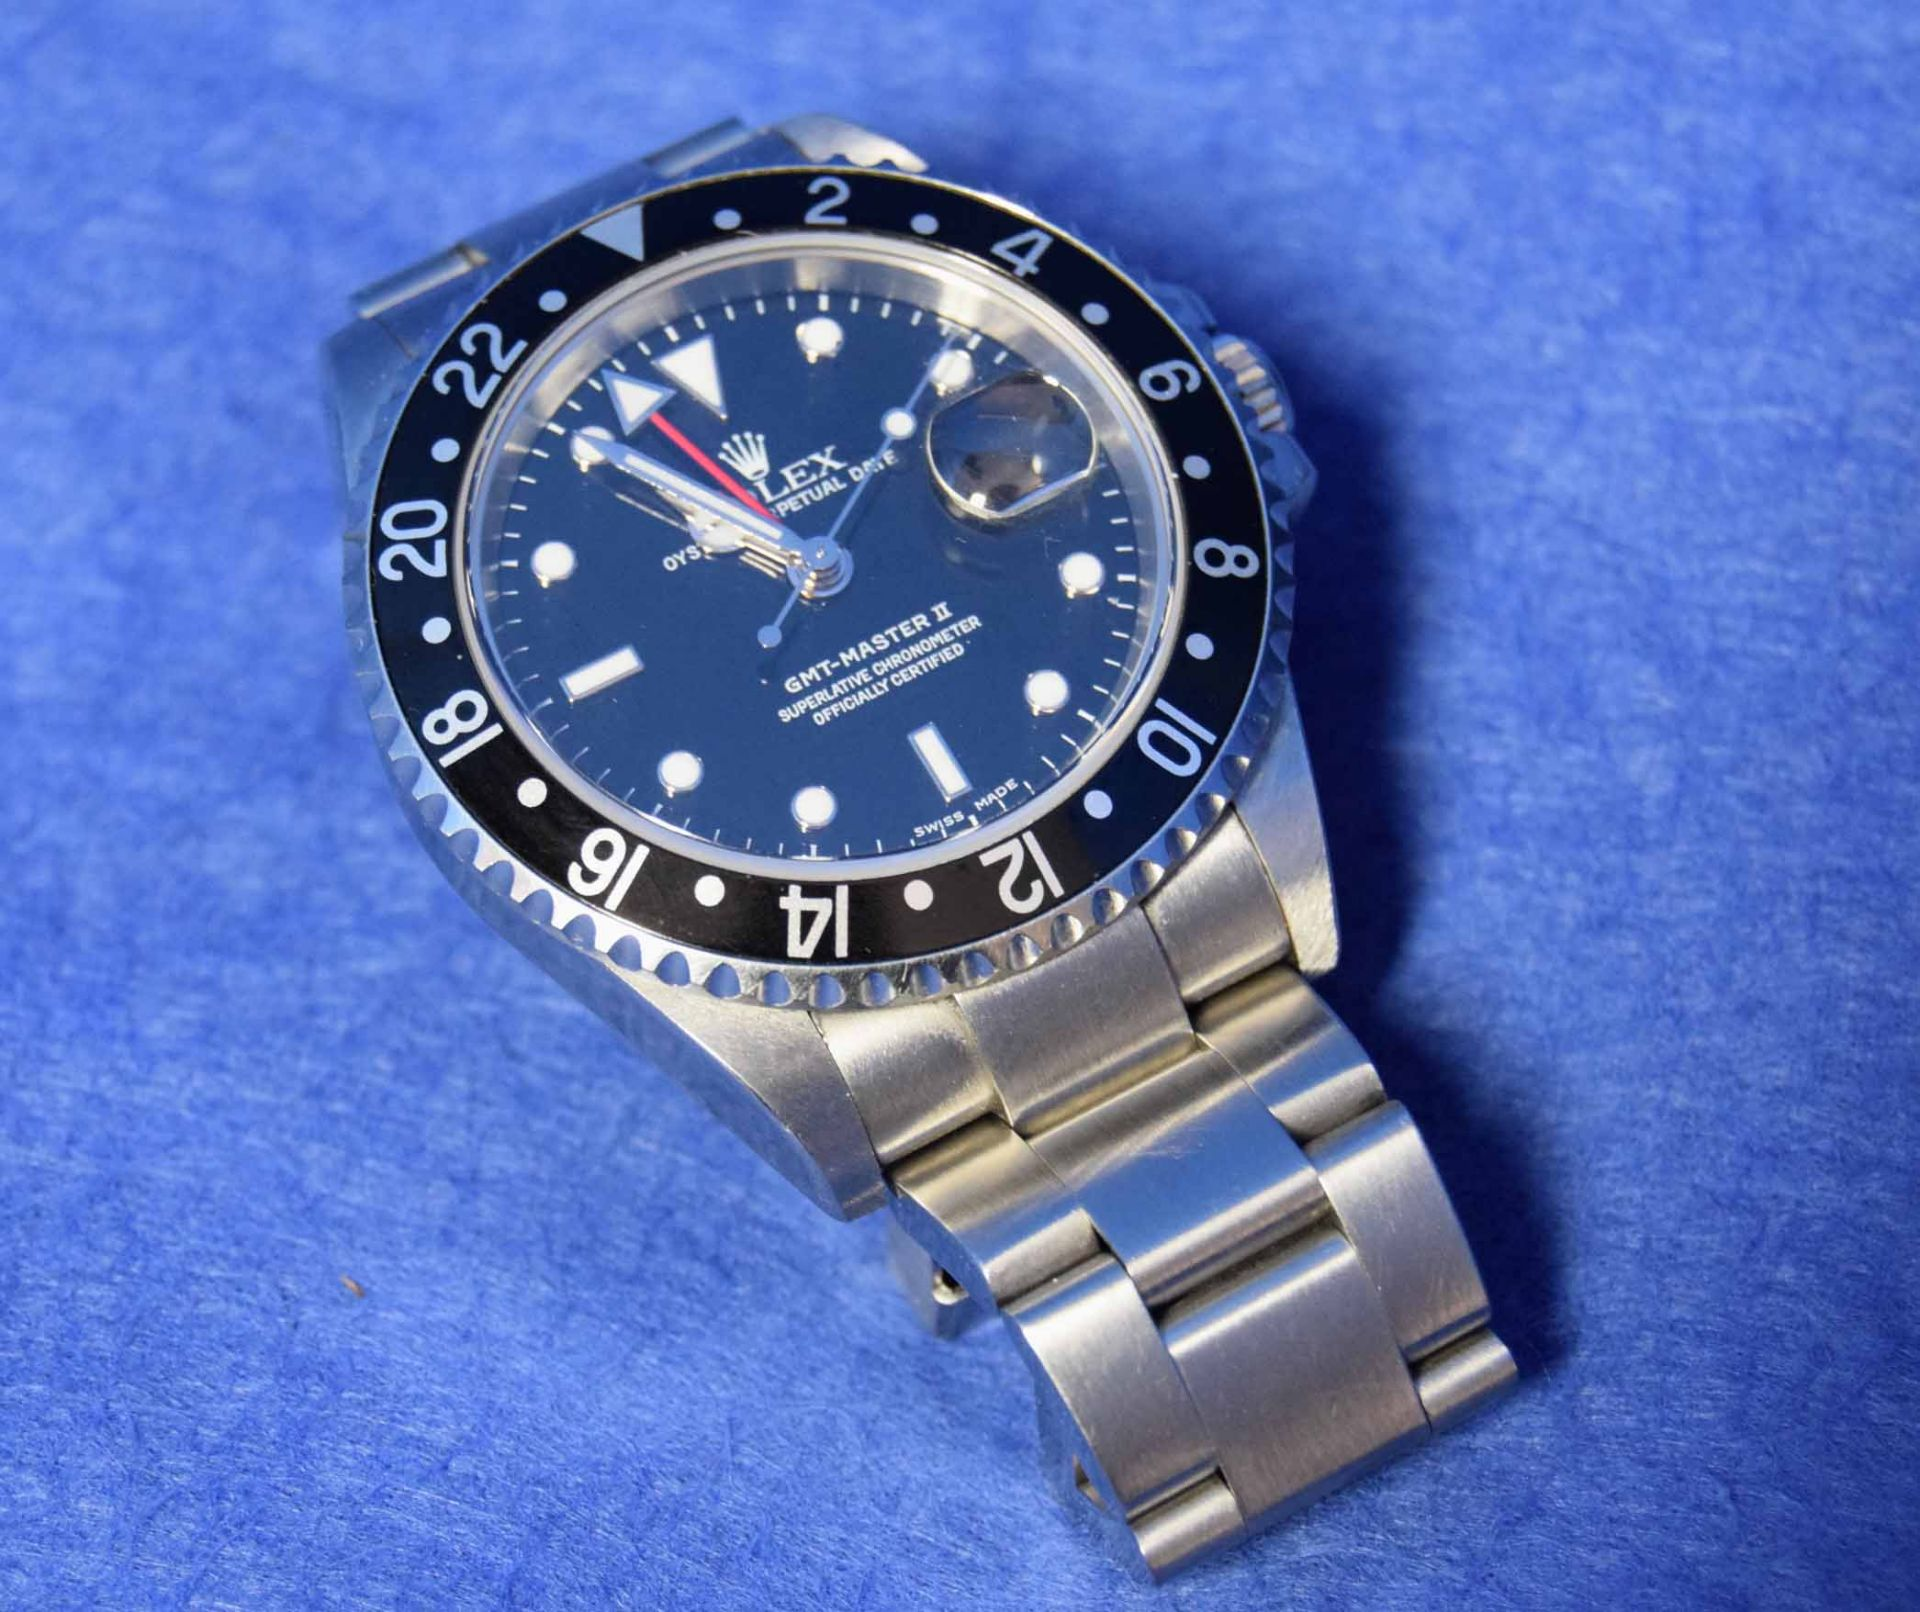 A ROLEX GMT-Master II Watch in a 40mm dia. Oyster Steel Case, with a Black Dial surrounded by a - Image 4 of 7